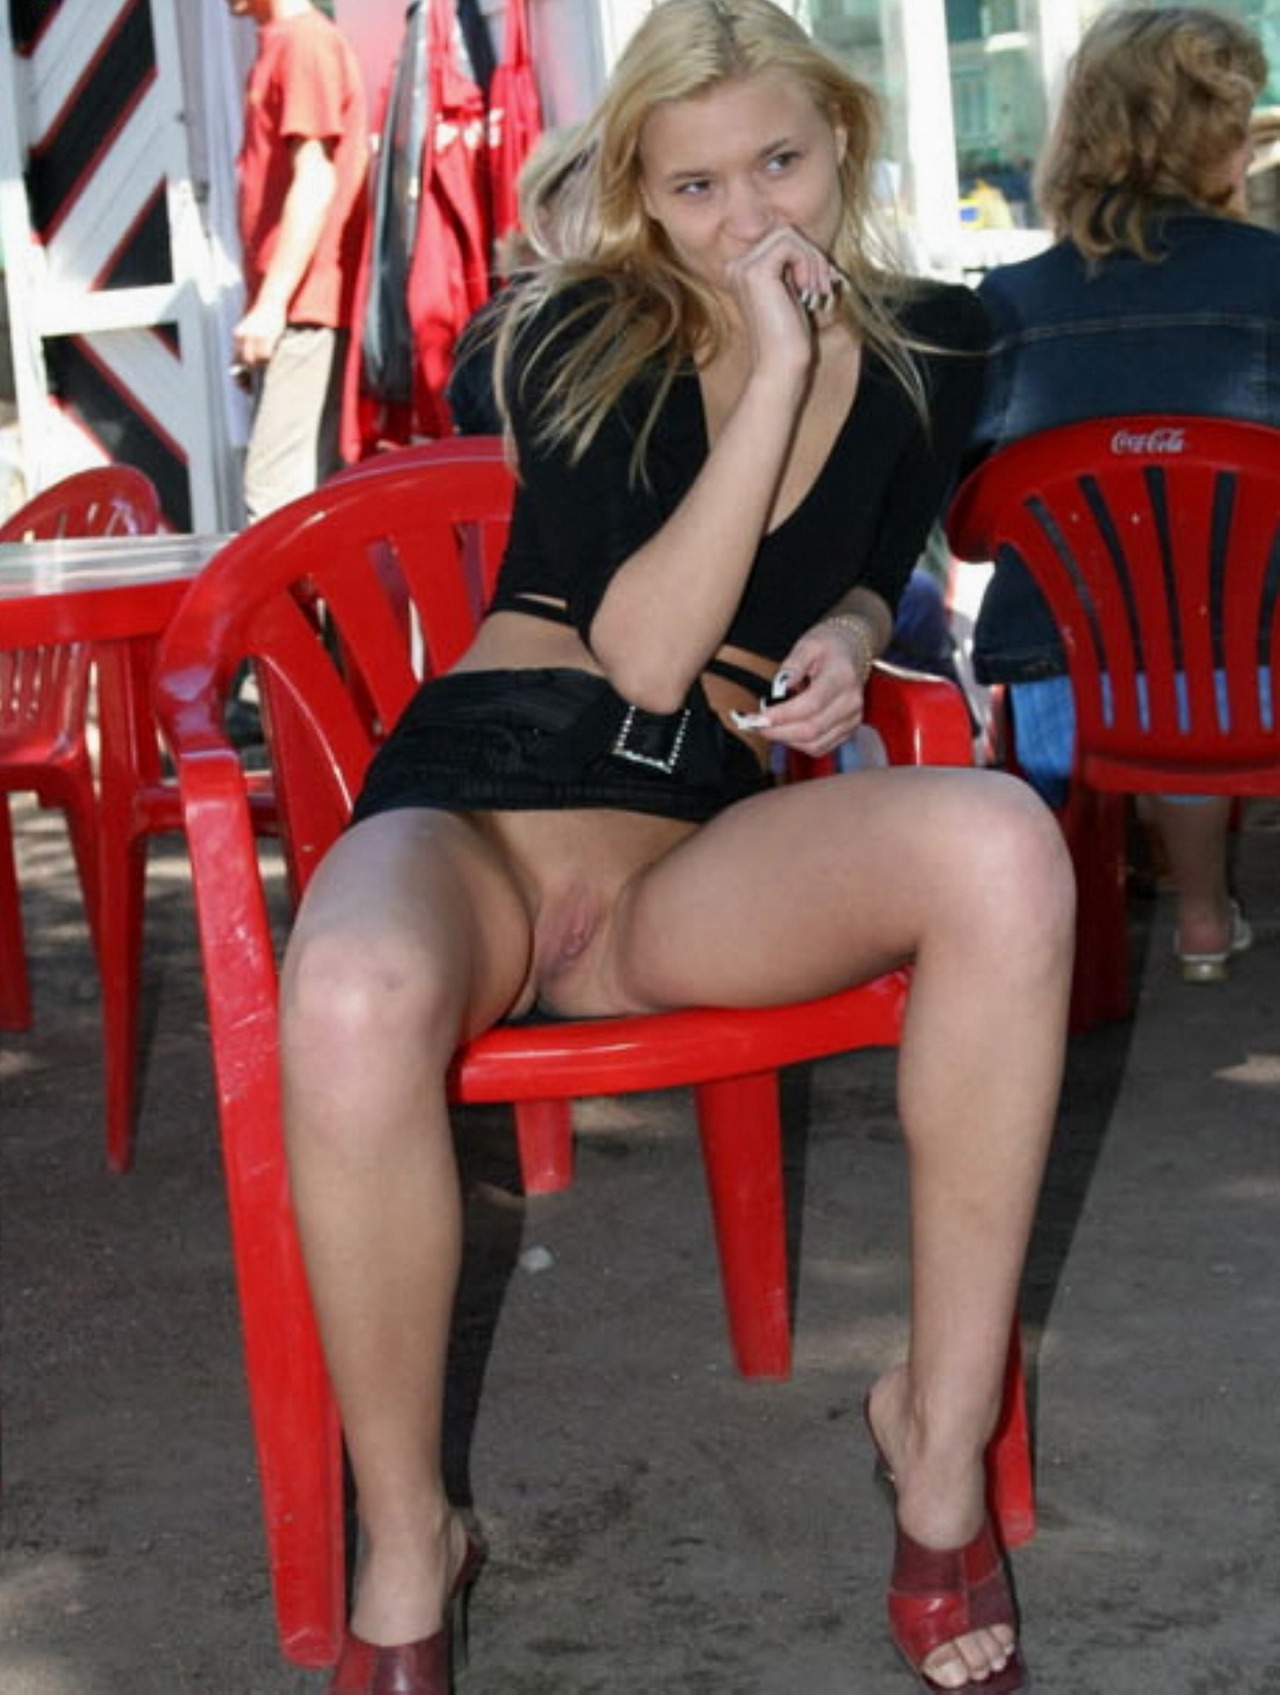 Hot chicks flashing in public - Page 308 - Yellow Bullet ...